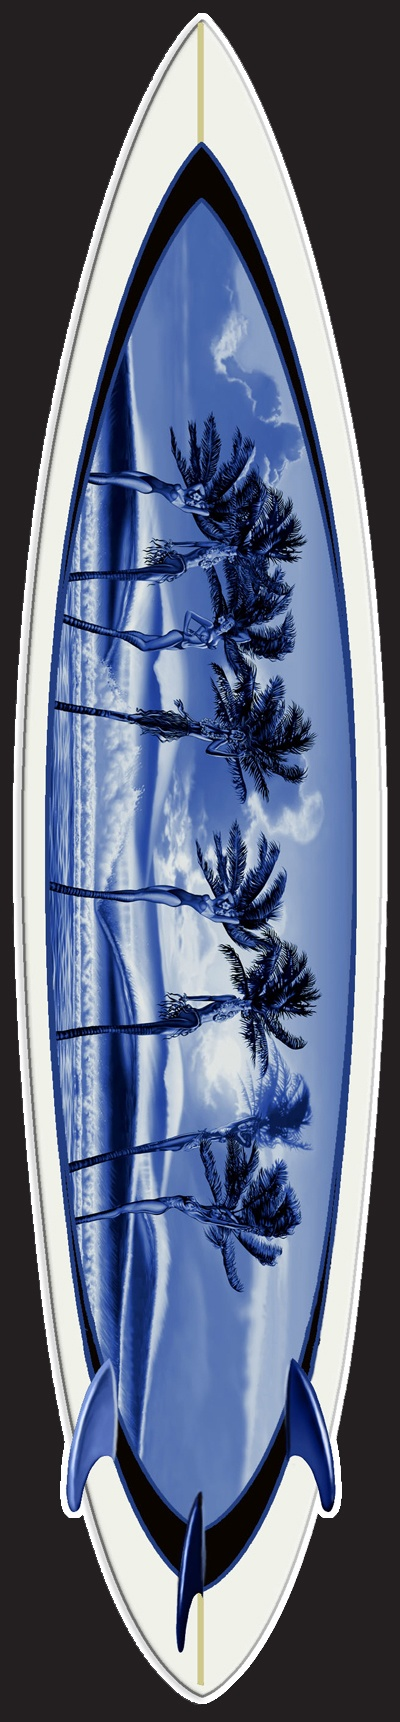 "Fantasy Palms by Rick Rietveld. Giclee Limited Edition Foam Surfboard, Imaged on Rice Paper Embedded into the Resin. Includes Patented Hanging System. 90"" x 19"" for $2,795.00. Free Shipping! #surfart"